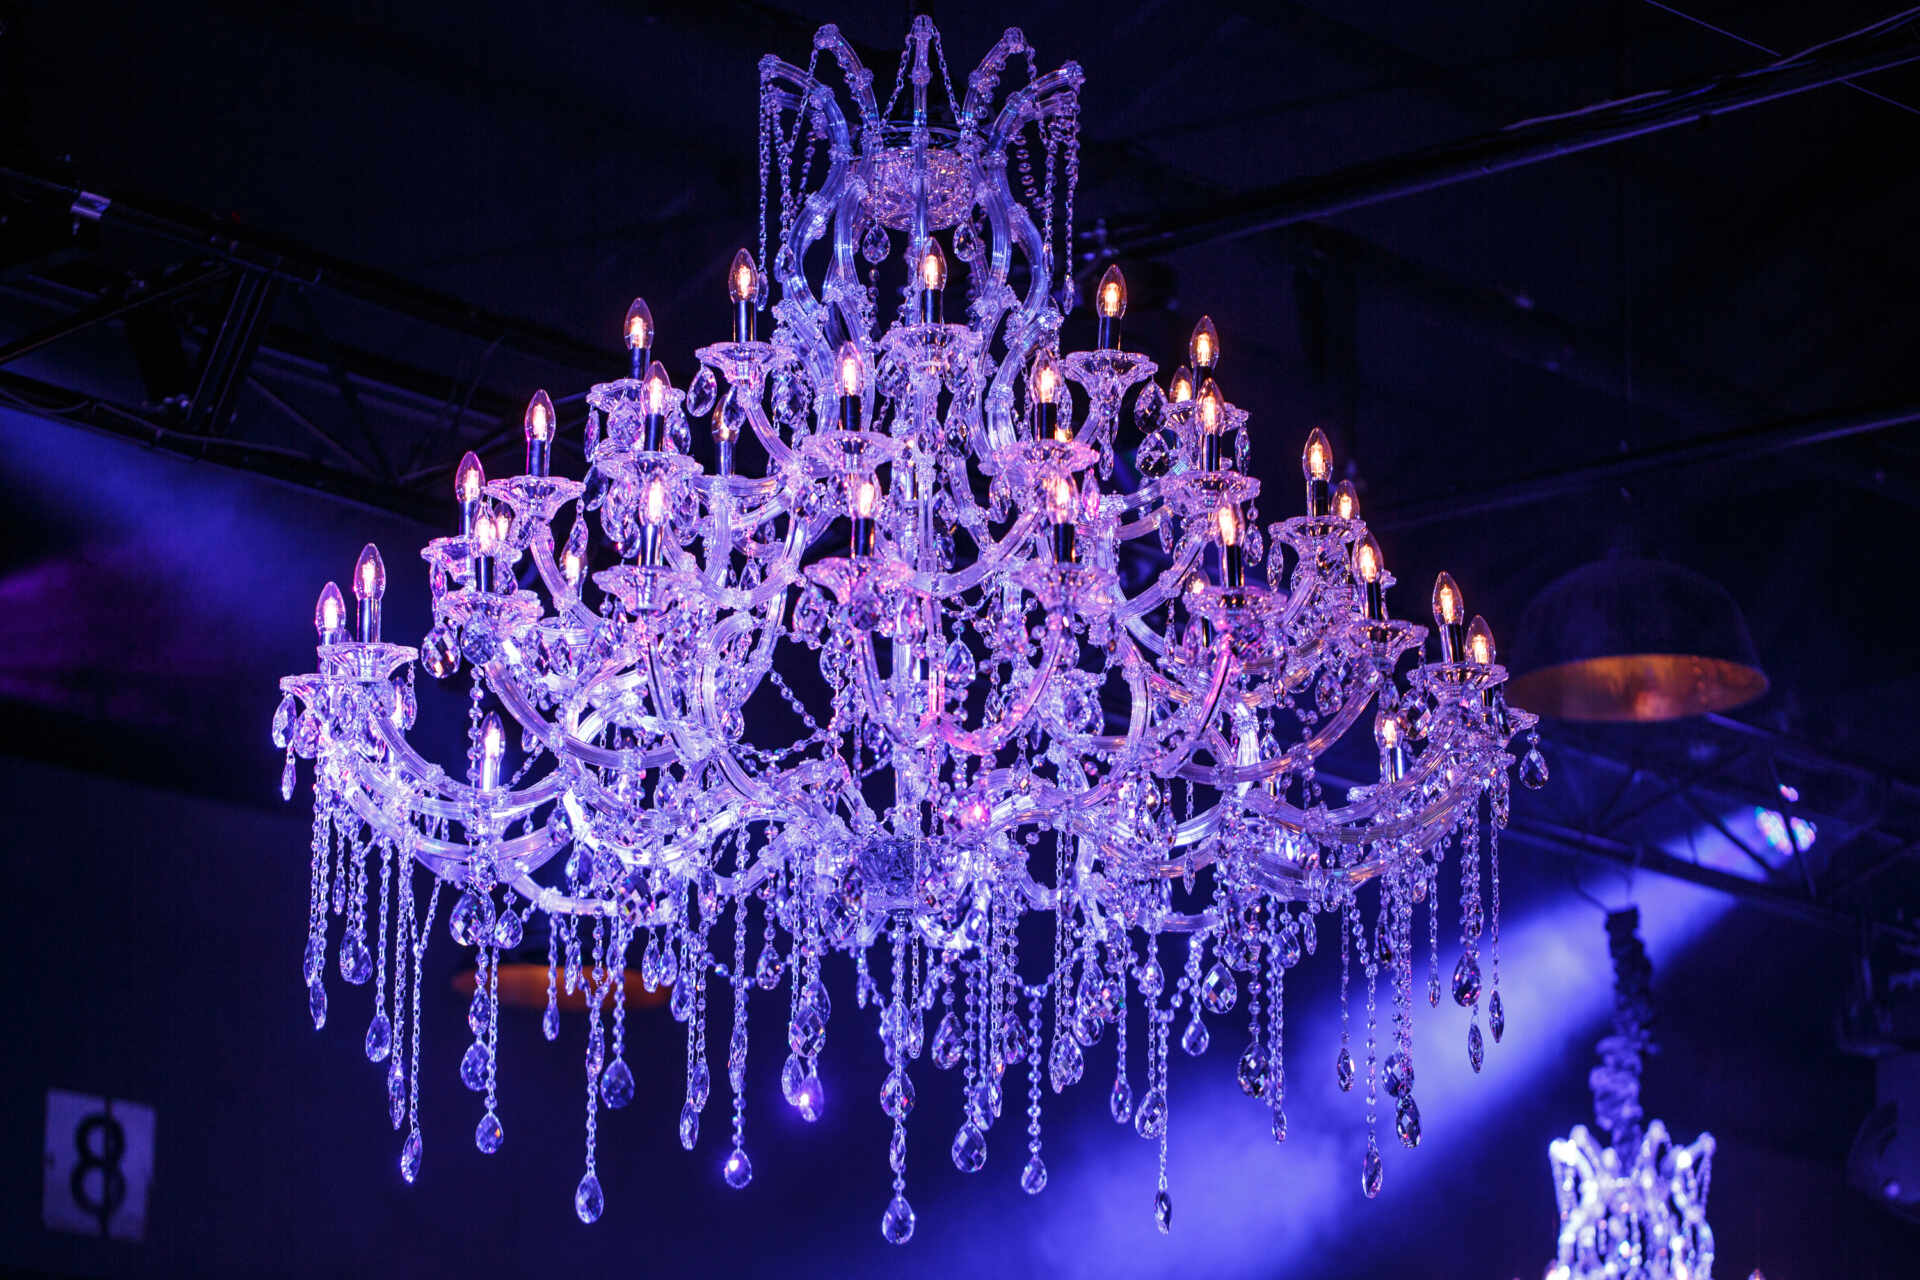 Chandelier hire melbourne action events for larger spaces we have a matching pair of exquisite chandeliers measuring 1300mm x 1500mm height x diametre and are a real statement chandelier arubaitofo Images